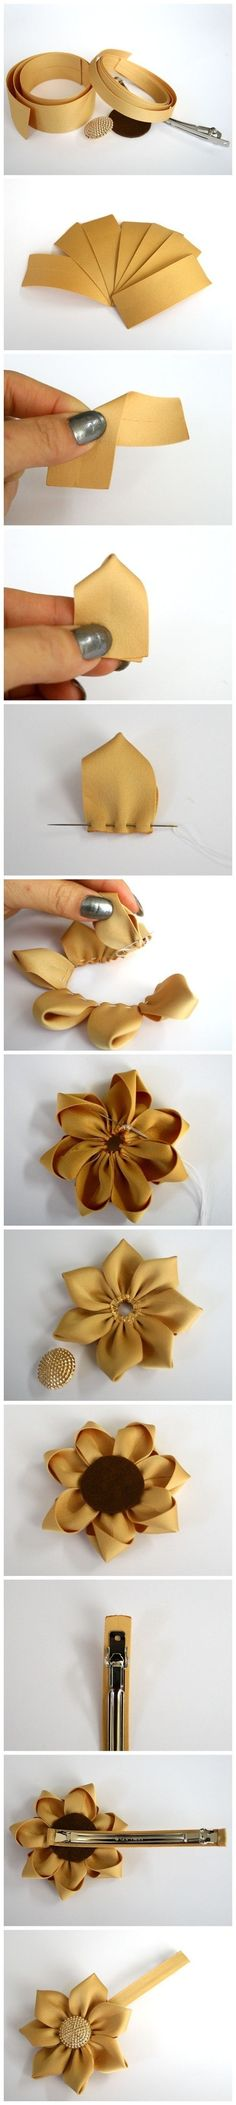 DIY Seven Petals Flower Hairpin DIY Seven Petals Flower Hairpin by diyforever